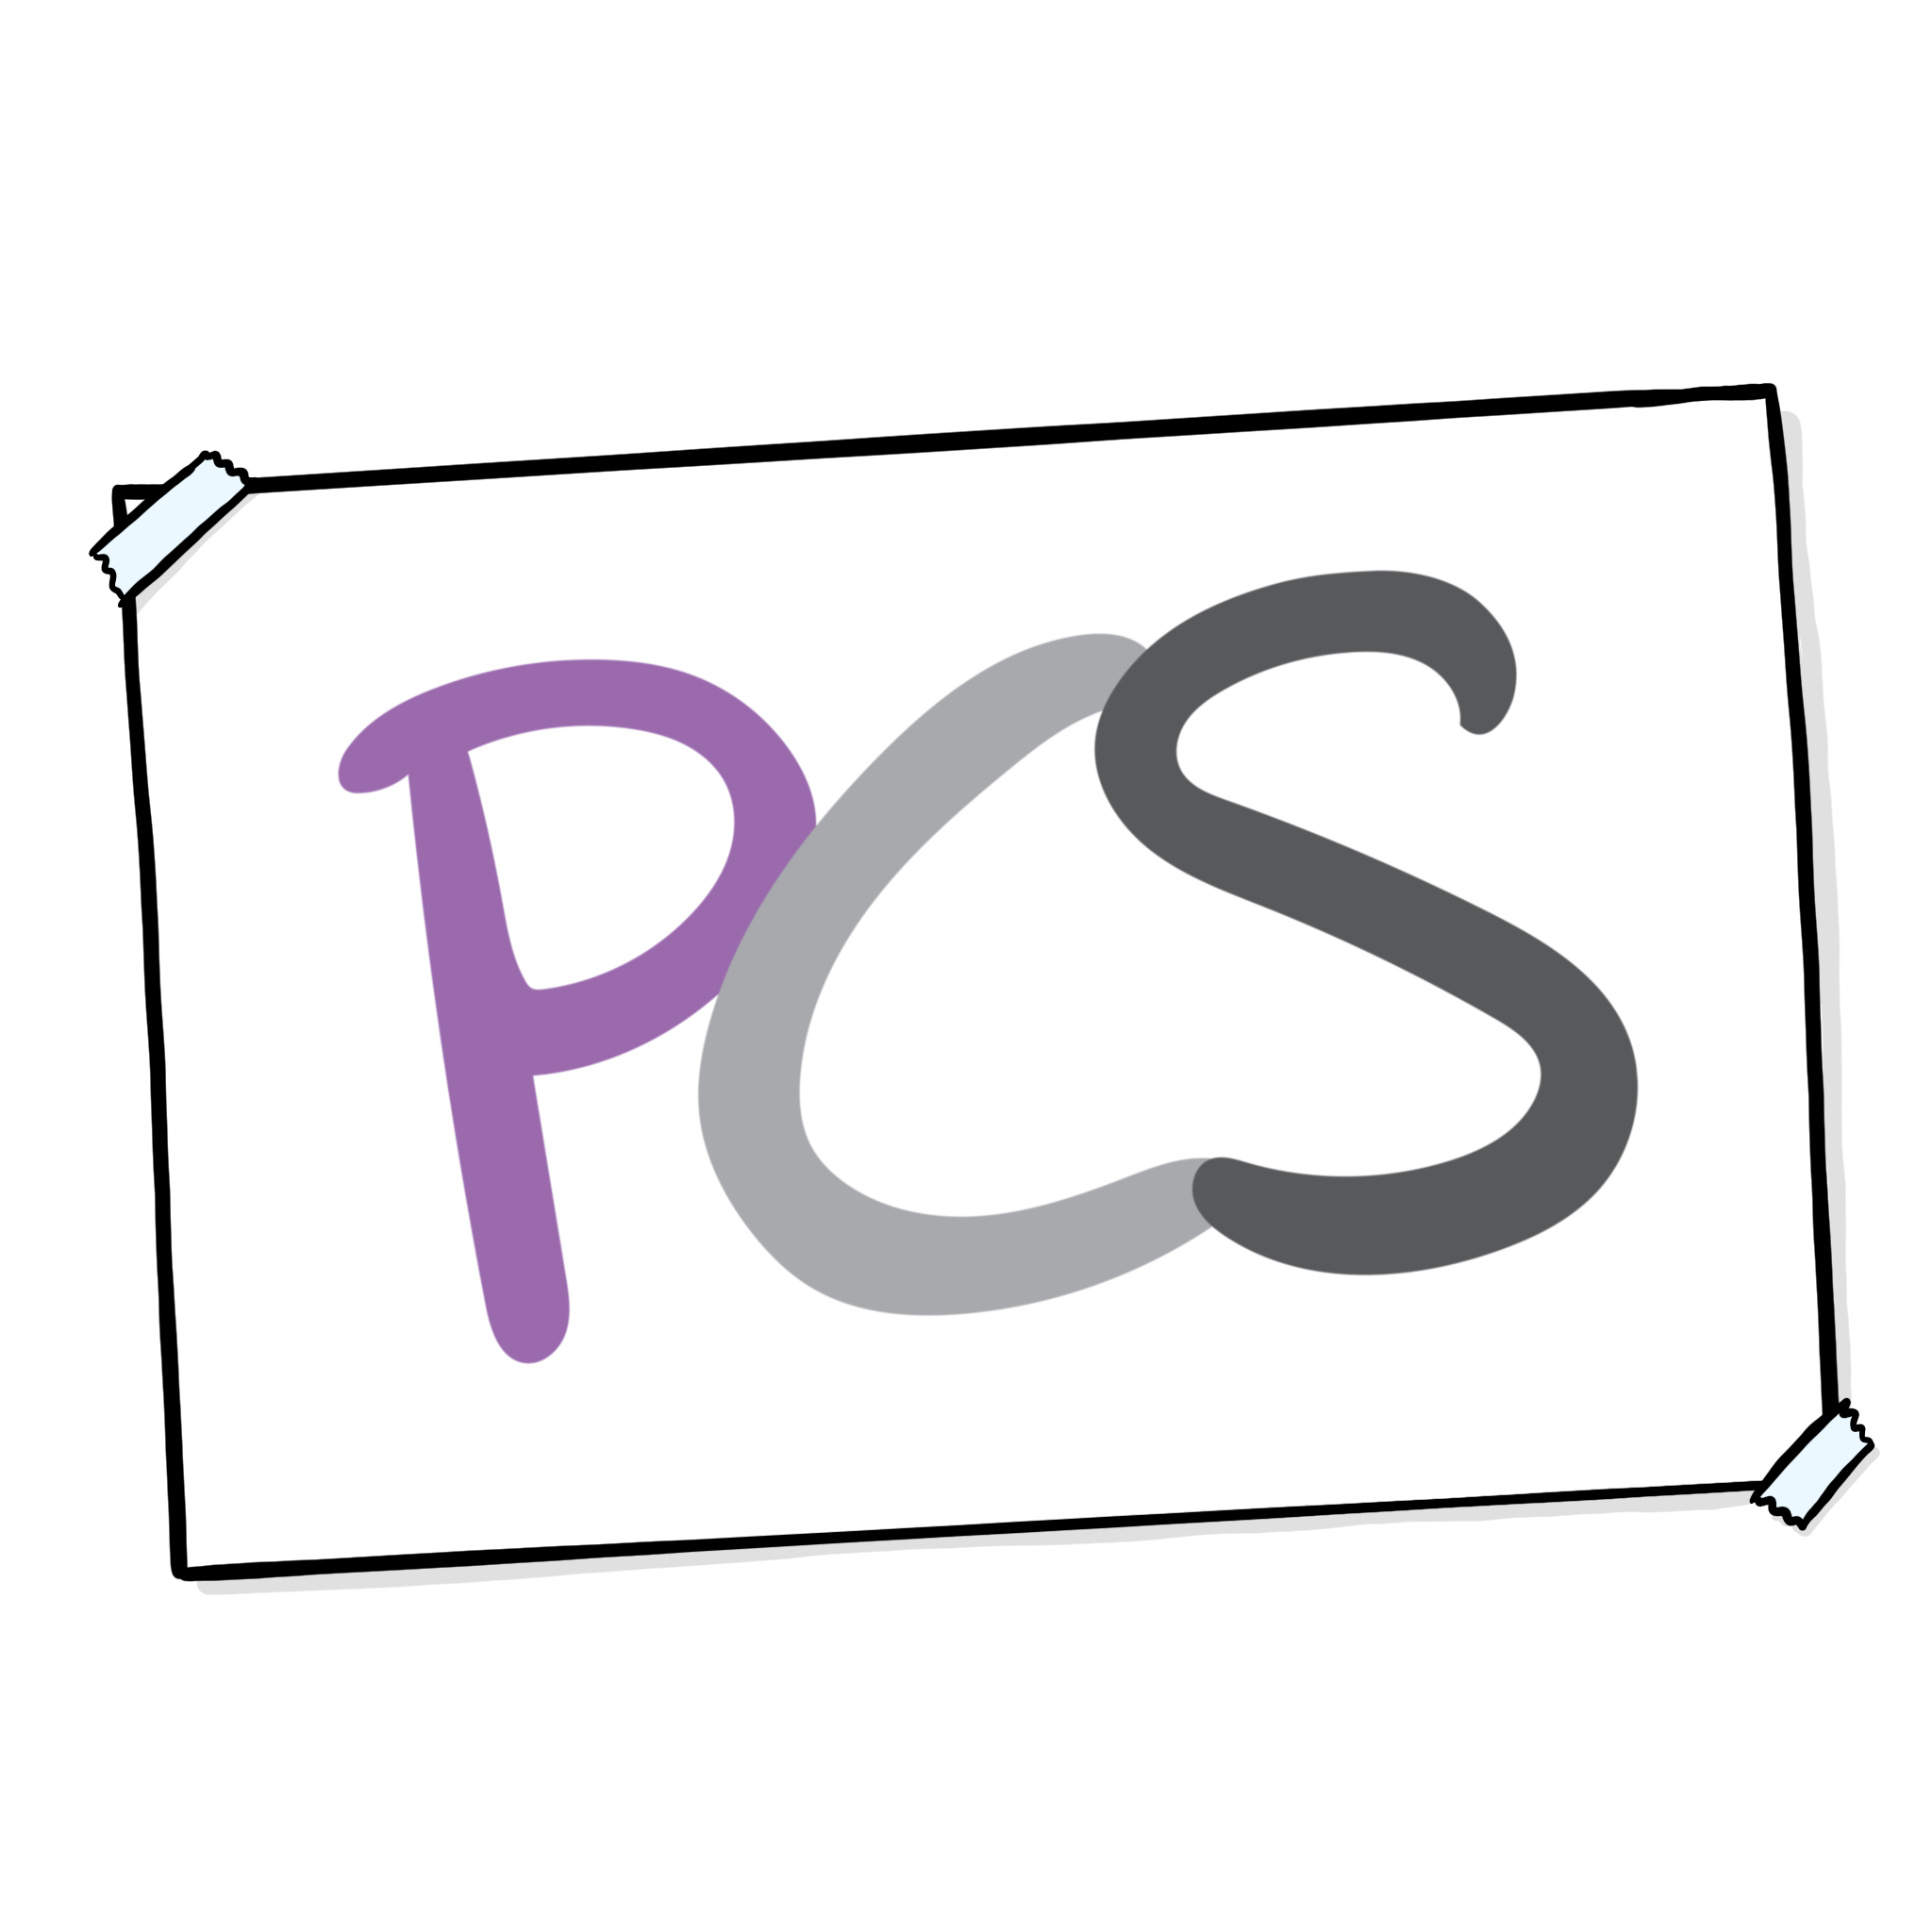 PCS logo on a piece of white card, taped at the edges